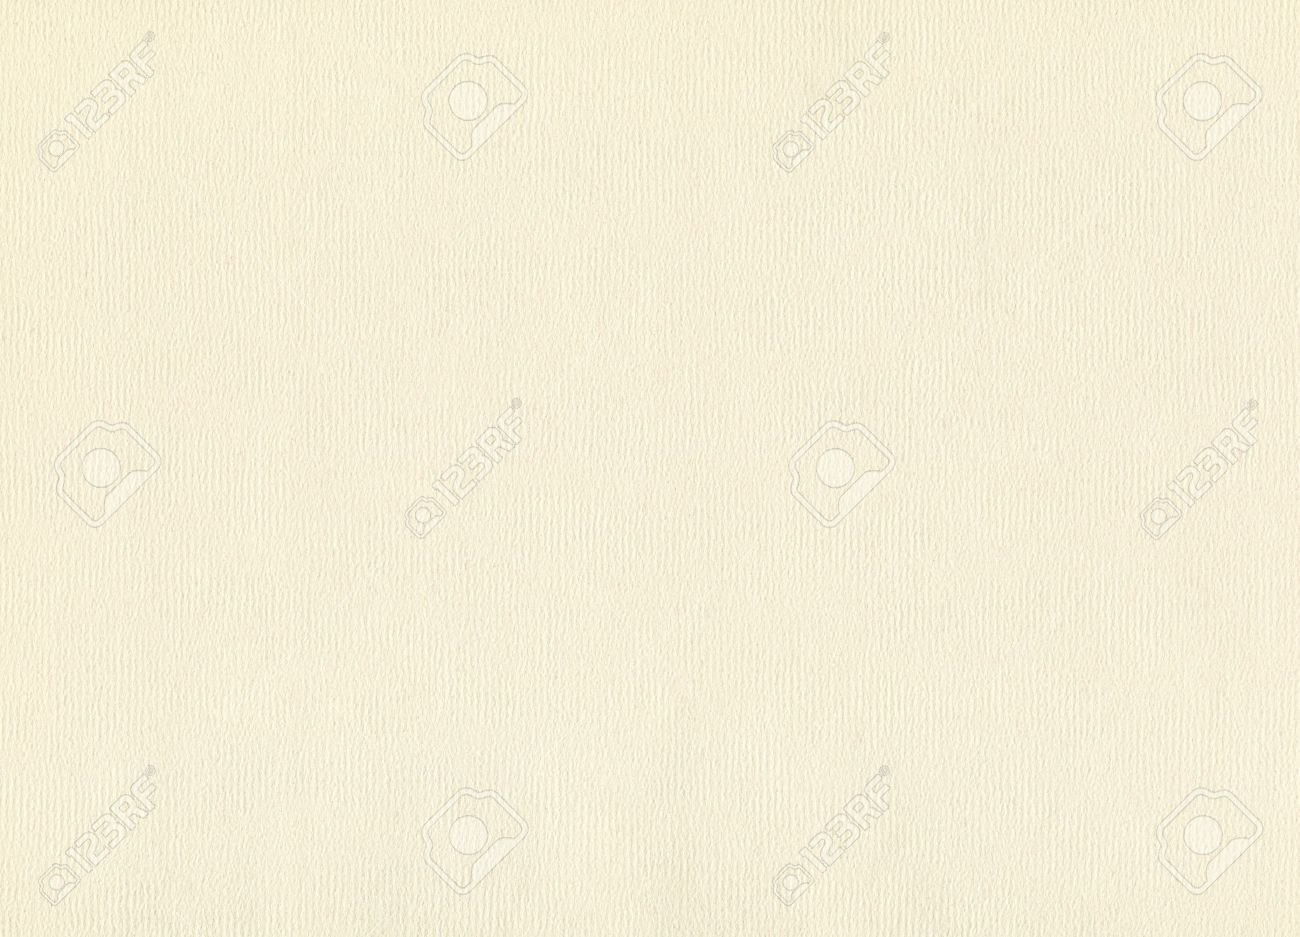 Watercolor Paper Texture, Abstract Blank Beige Material Stock ...